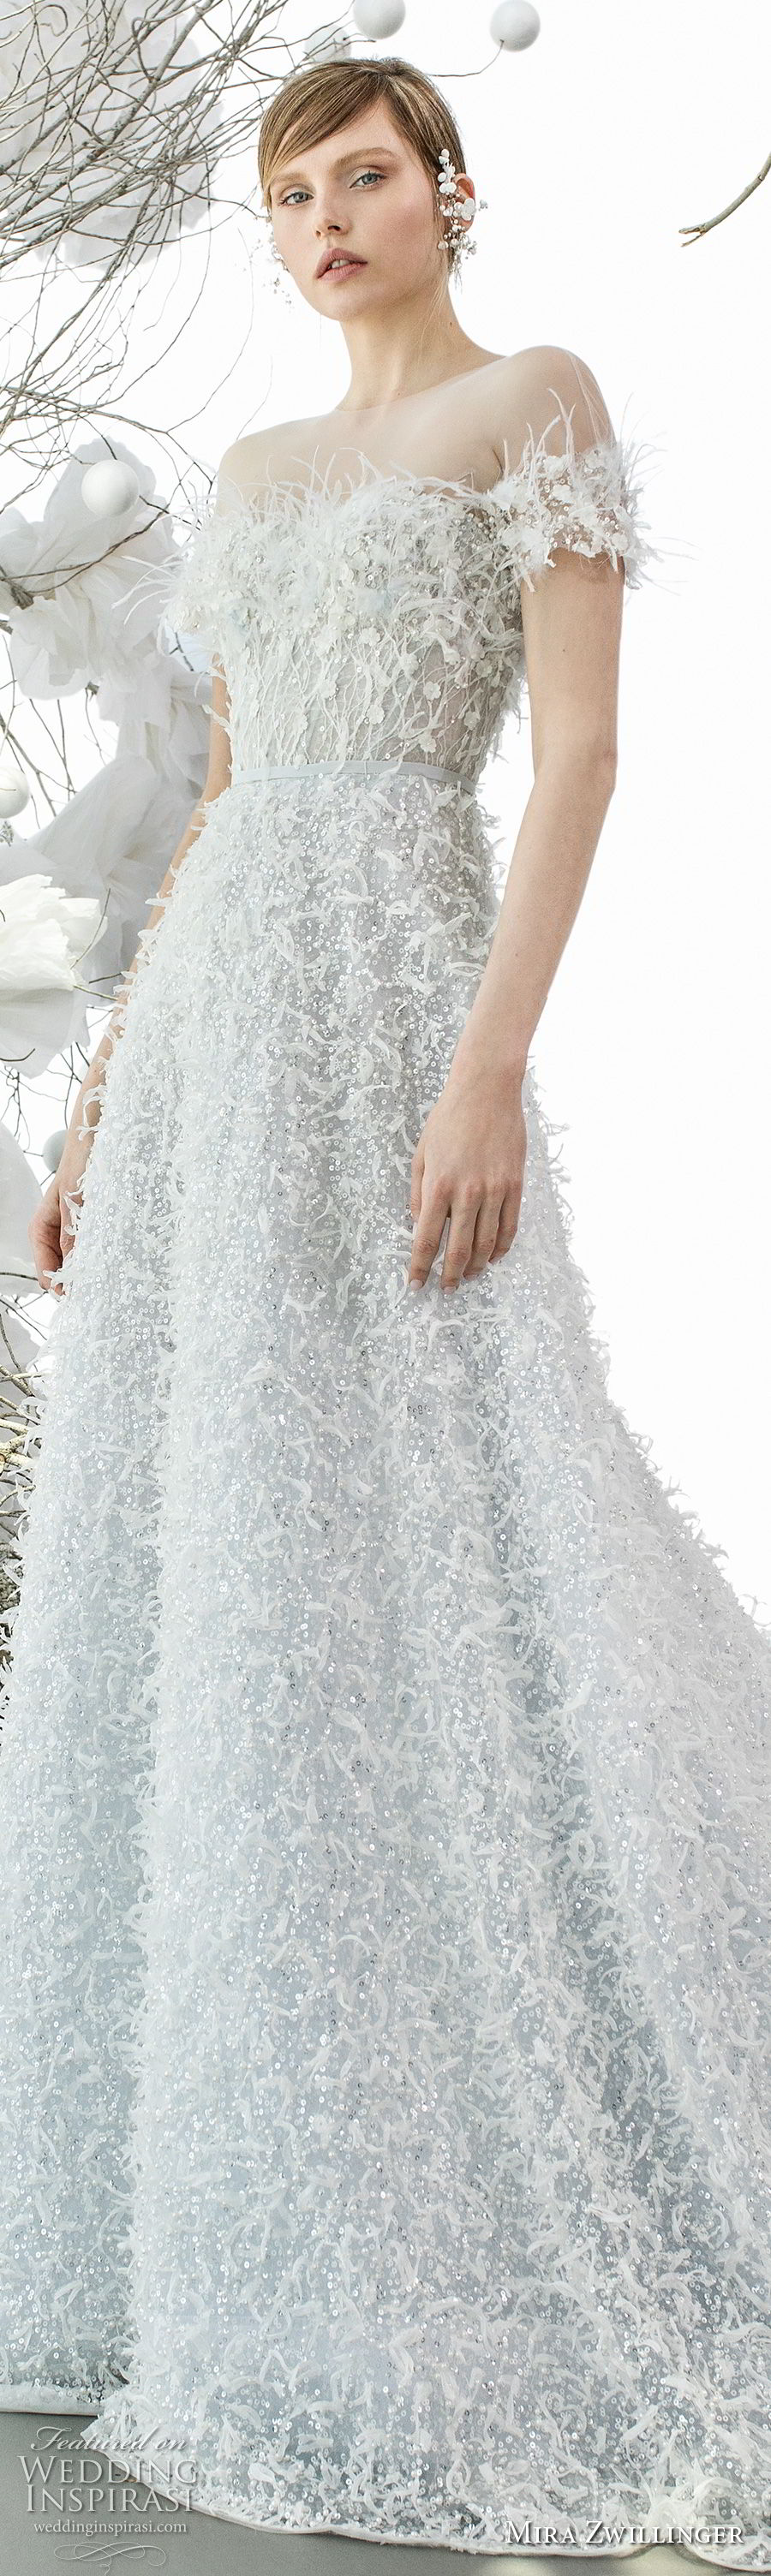 18 Vintage Inspired Puff Sleeve Wedding Dresses That Make A